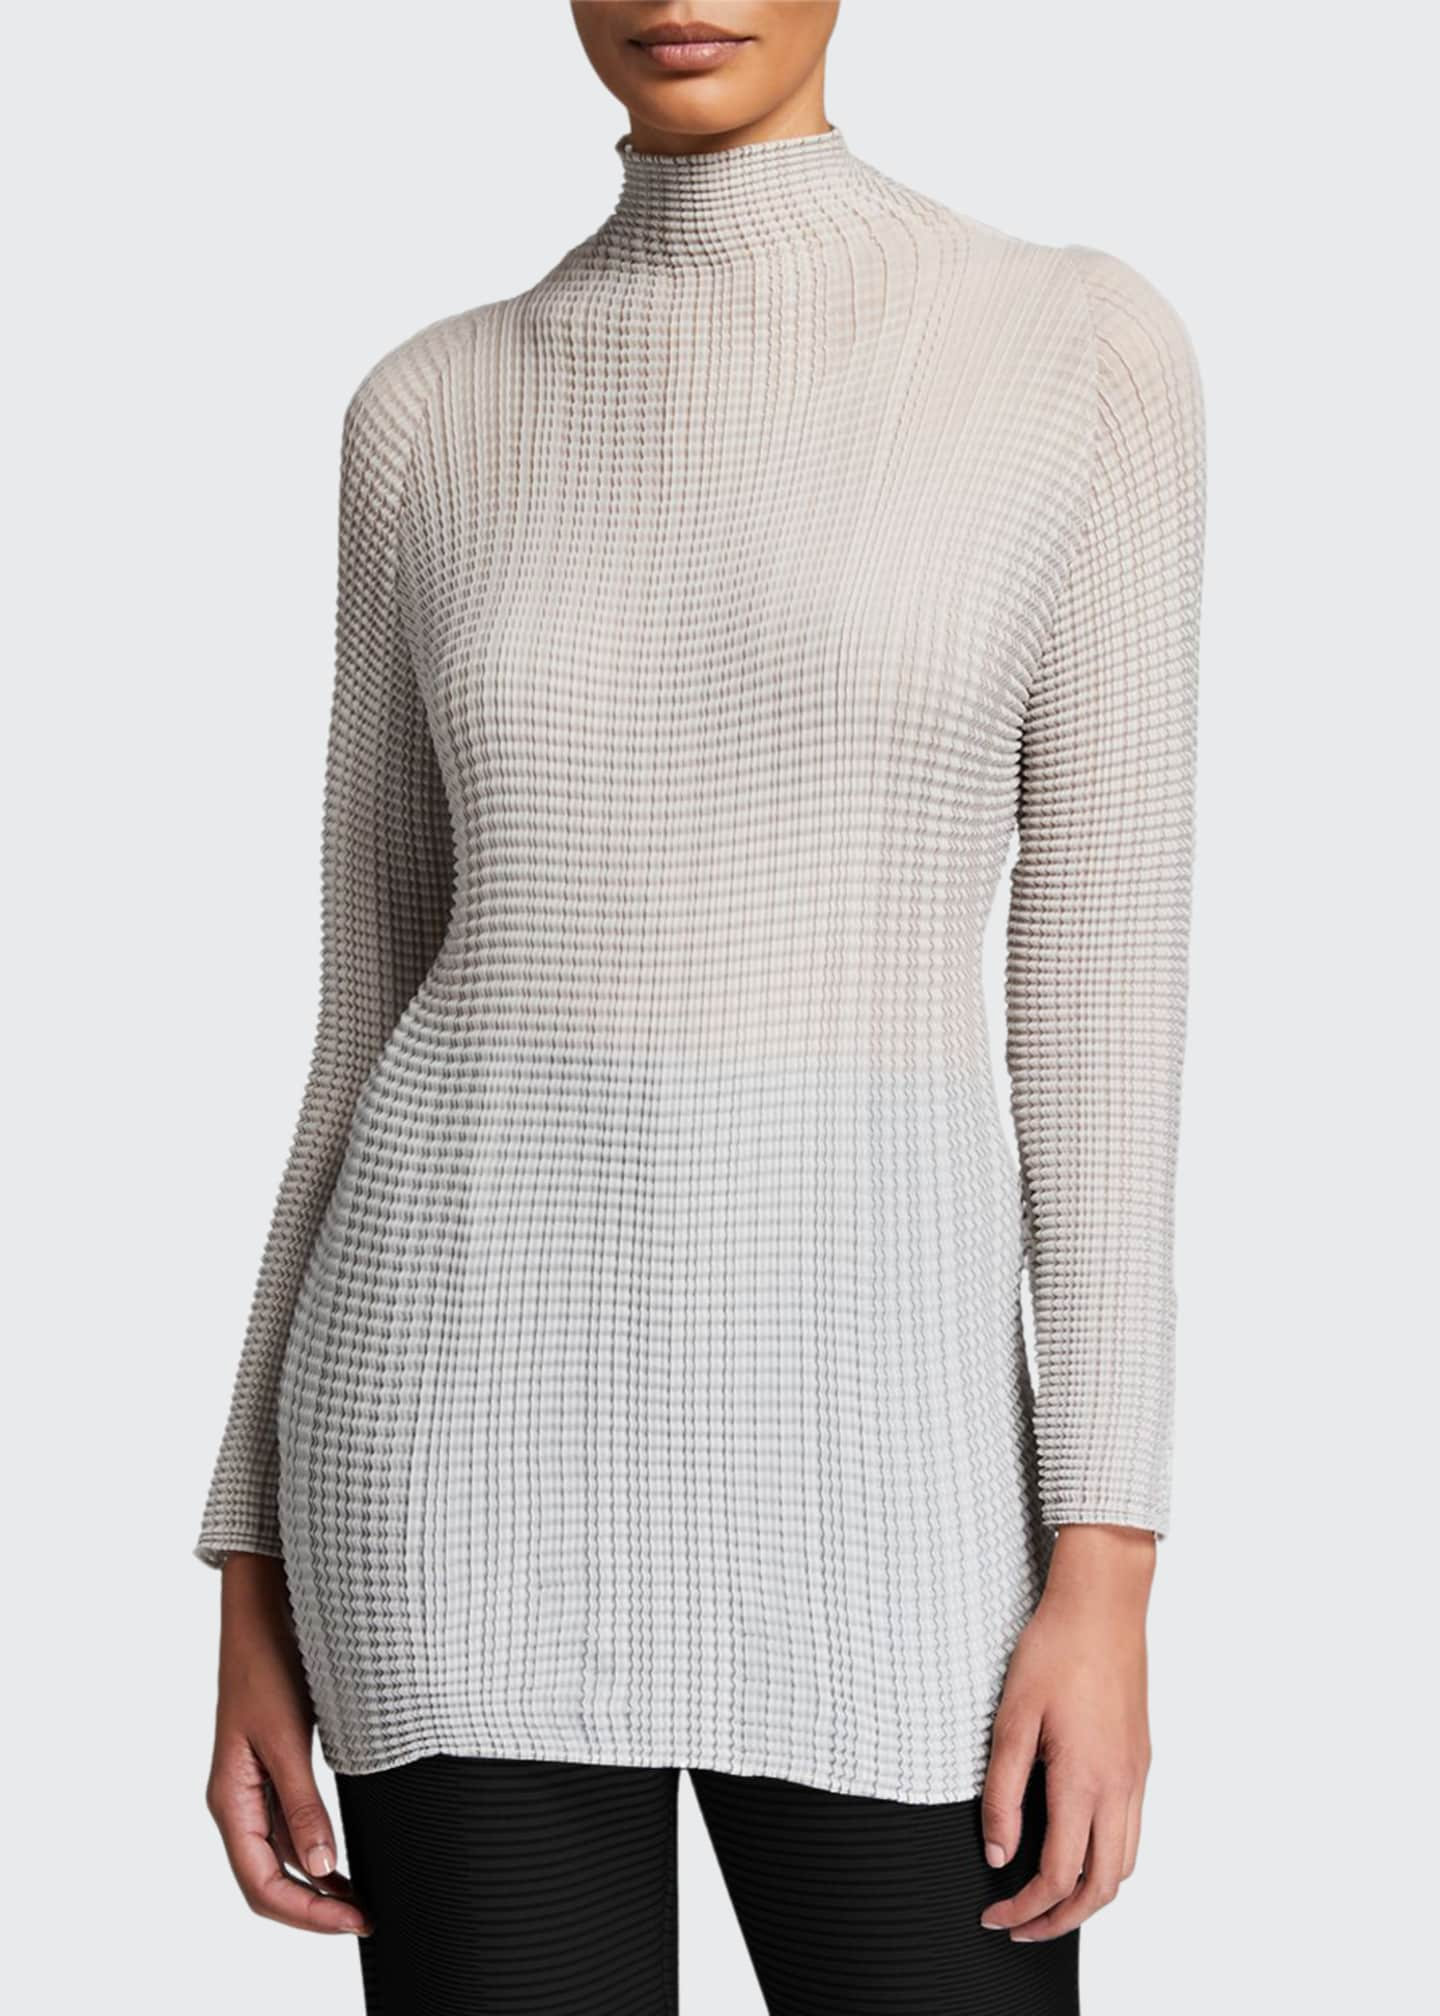 Issey Miyake Wooly Pleated Mock-Neck Sweater